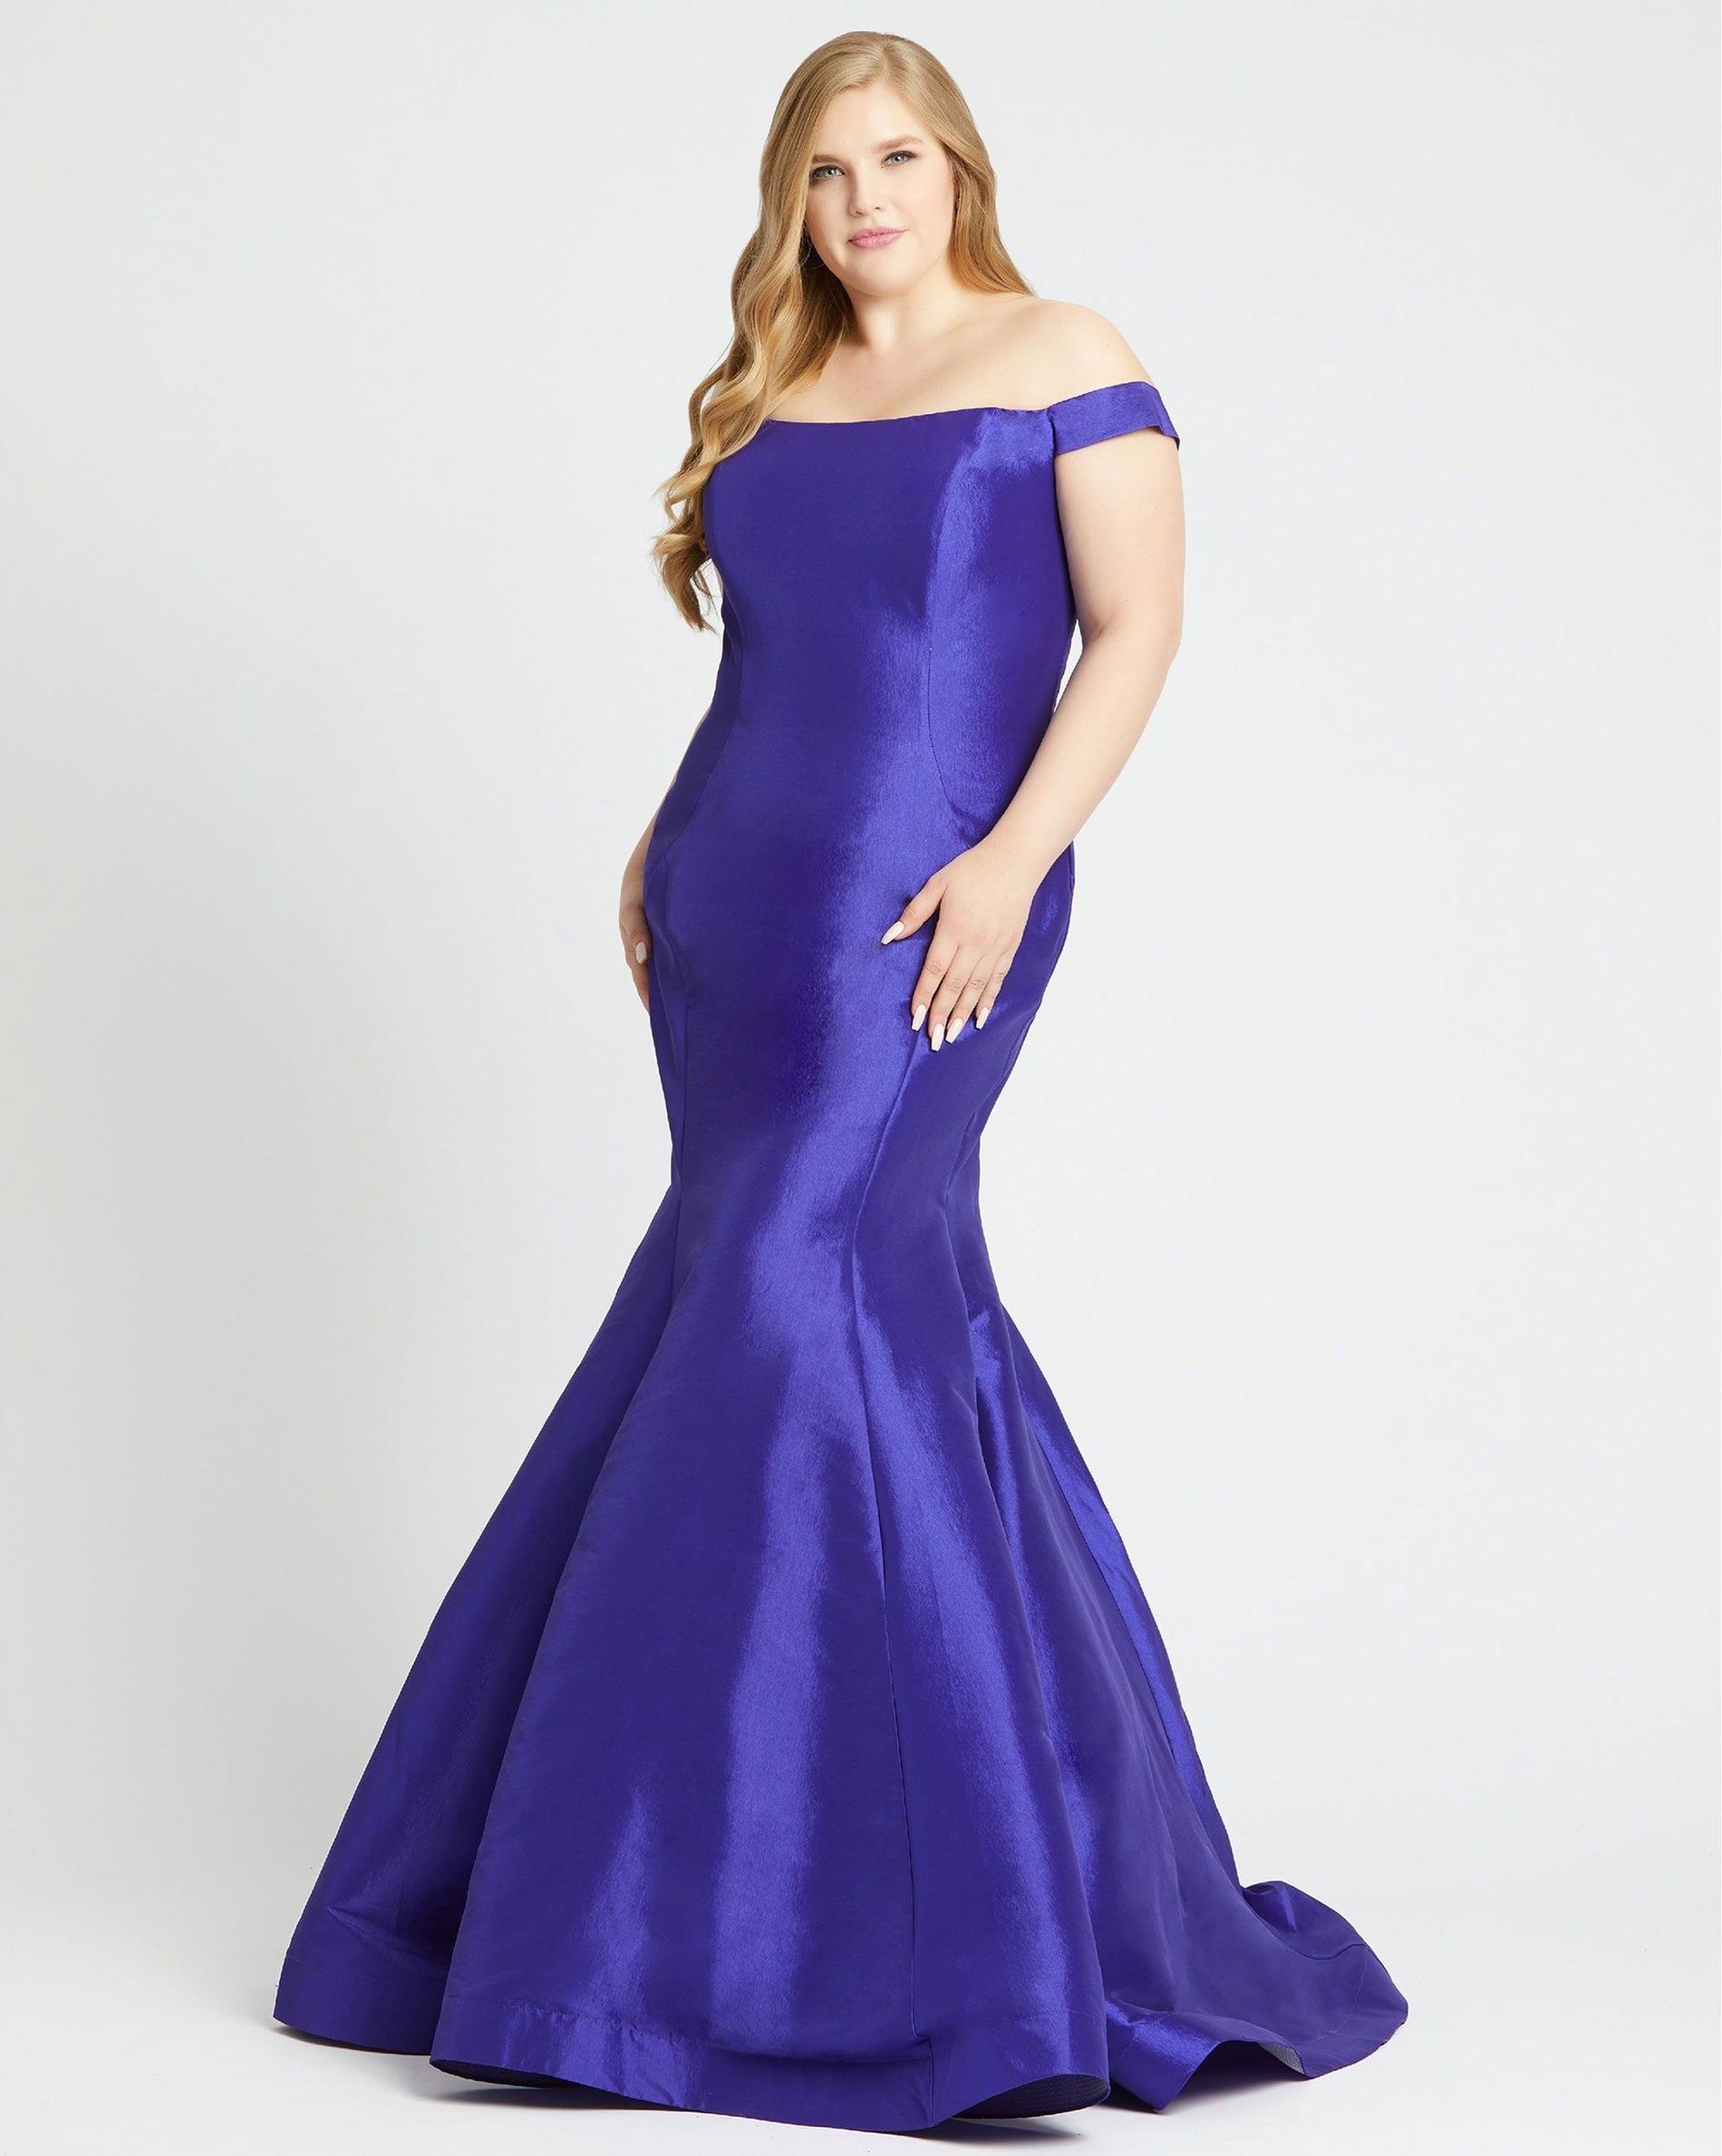 Style 66803 Mac Duggal Purple Size 16 Tall Height Wedding Guest Mermaid Dress on Queenly